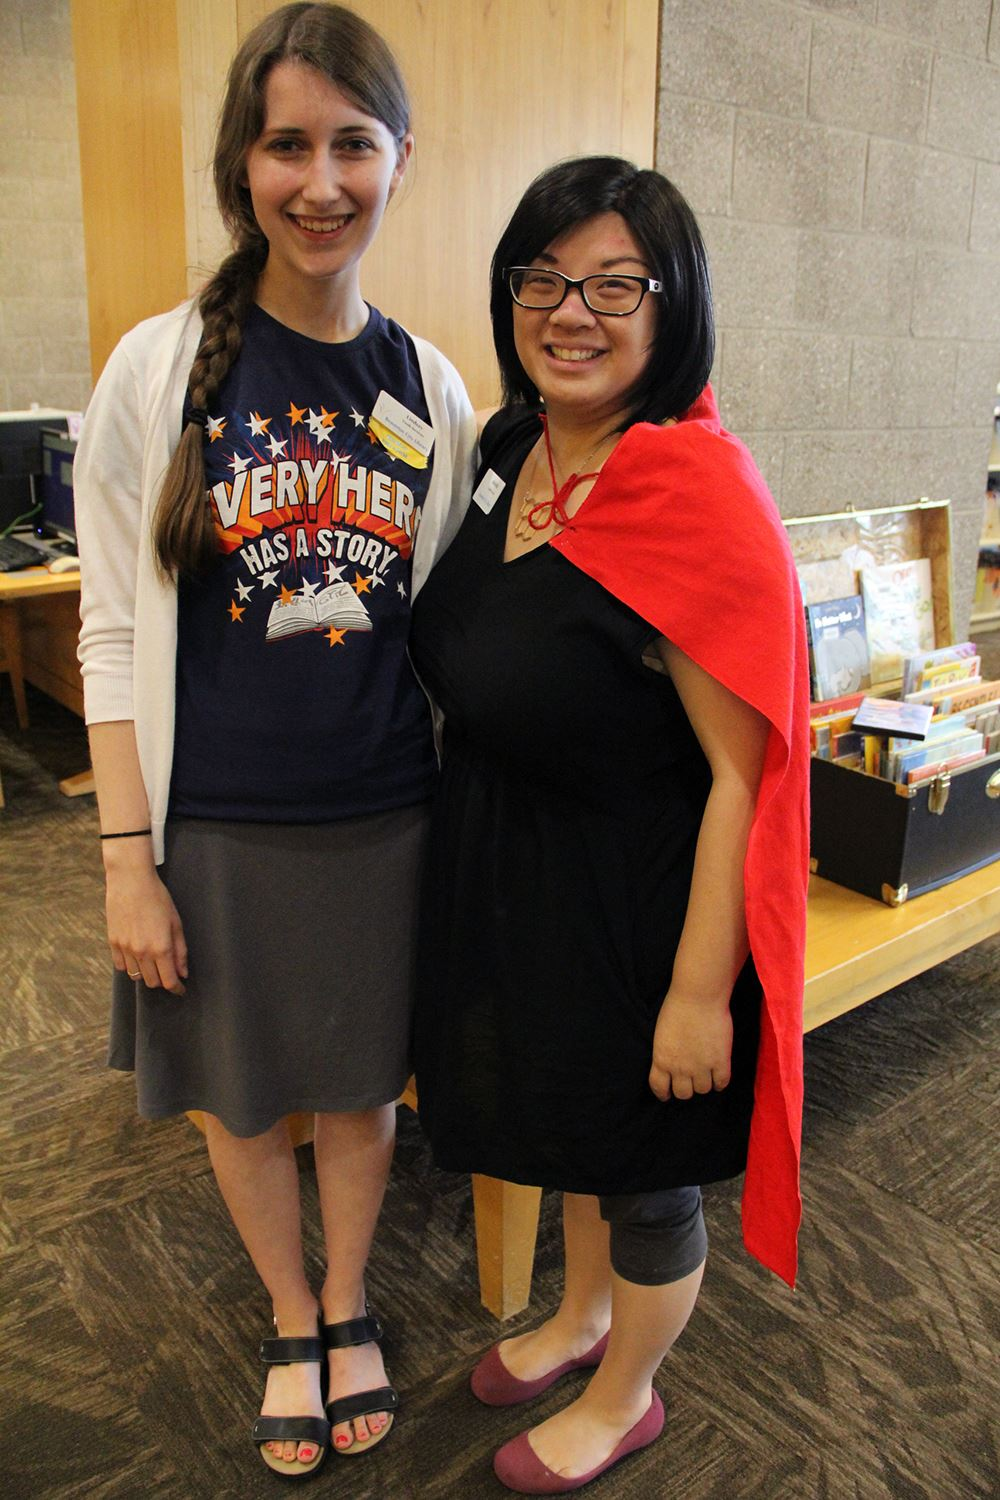 Photo of two women smiling and standing in a library.